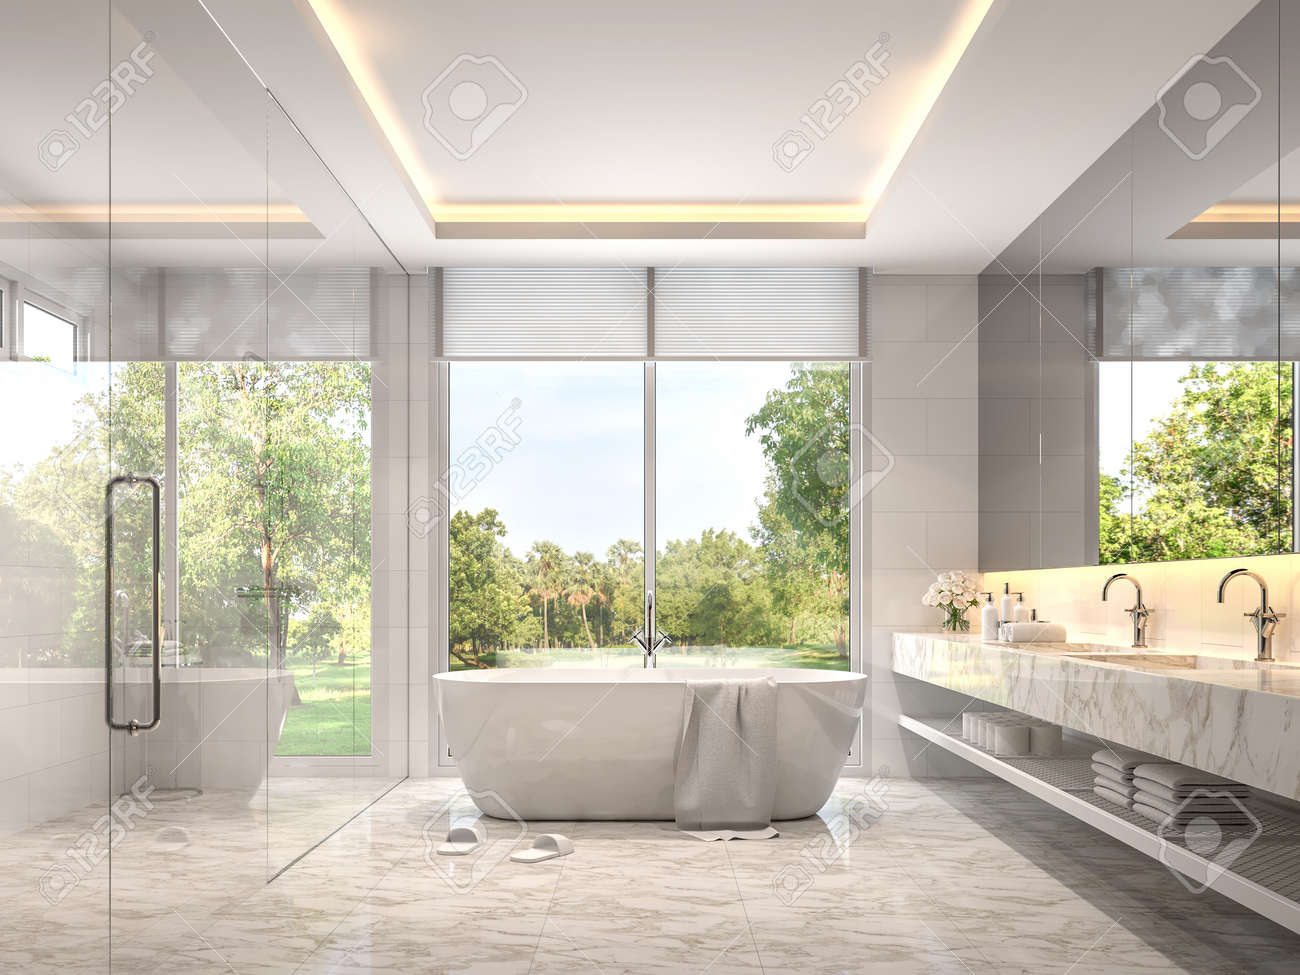 Modern Luxury White Bathroom 3d Render Room With Marble Tile